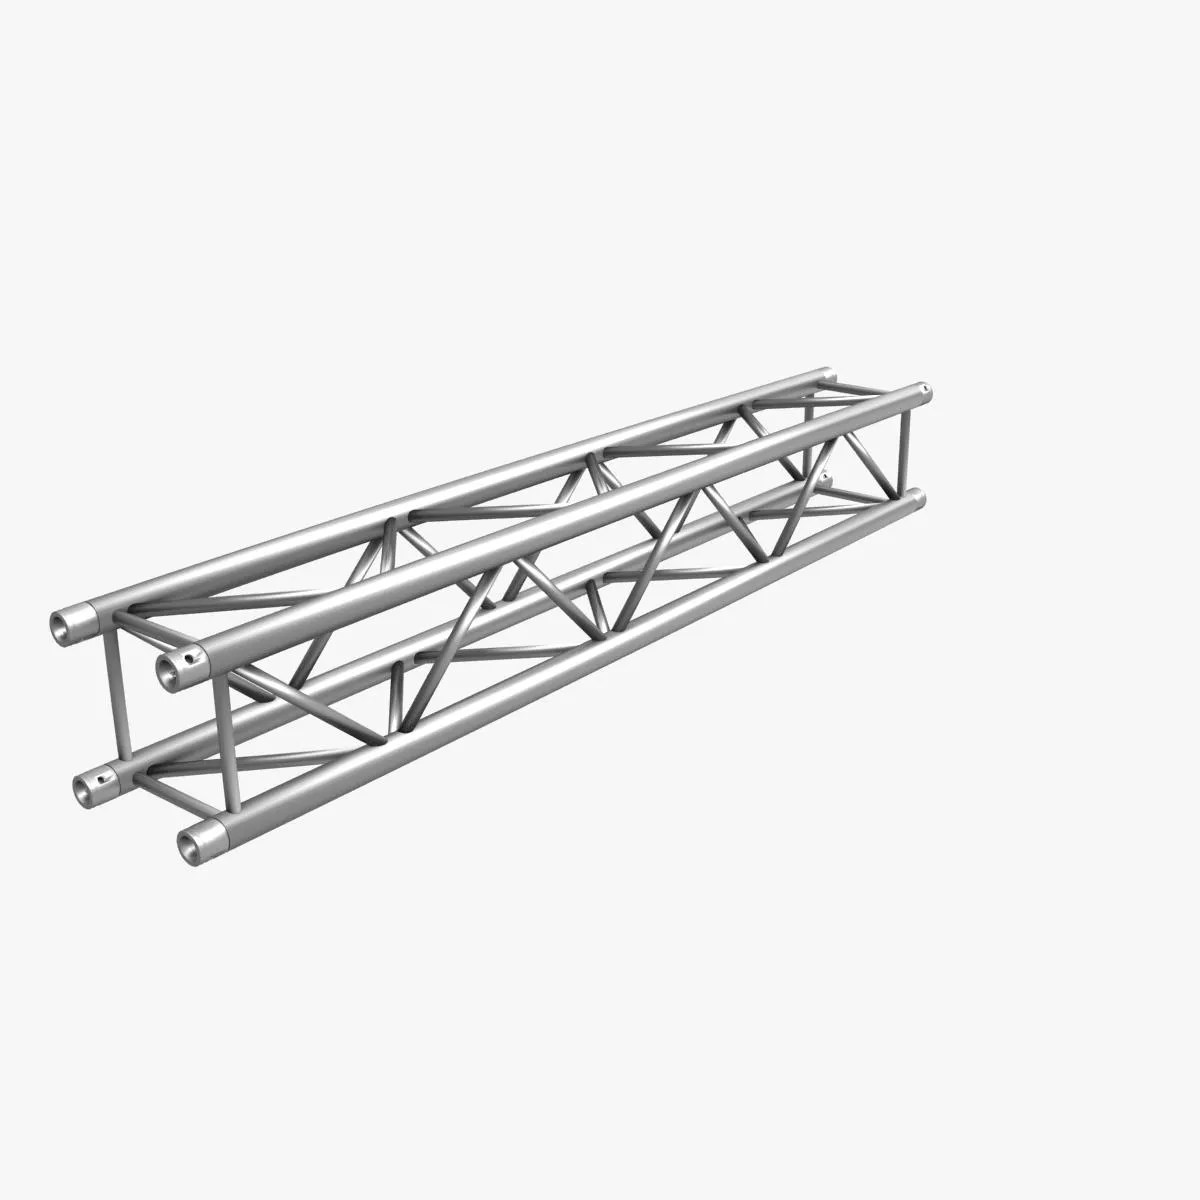 Square Truss Standard 004 3d Model Objects Set, 3ds max